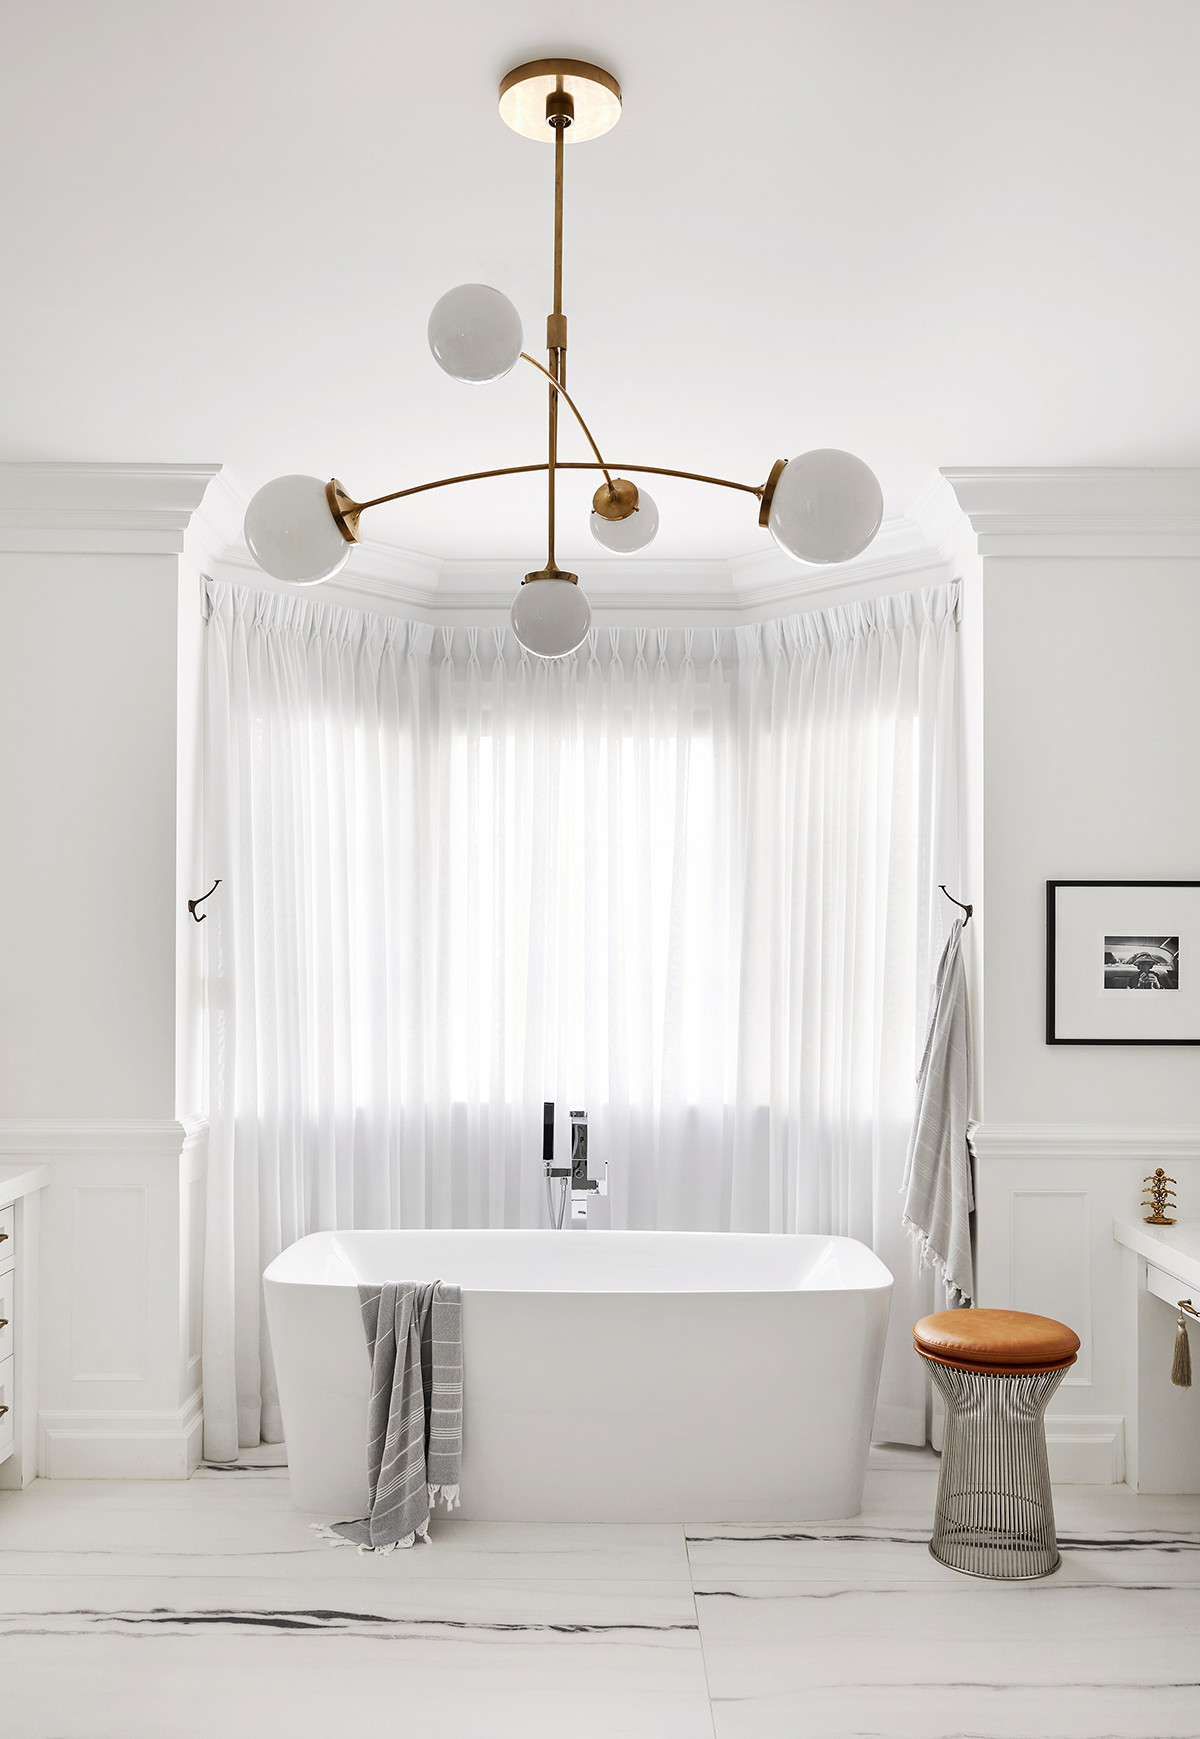 Bing finds respite from a long workday in this dreamy marble bathroom with freestanding tub.Lou & FriendsHammam Towels |Platner Stool|Visual Comfort Kate Spade Prescott 5-Light Chandelier.